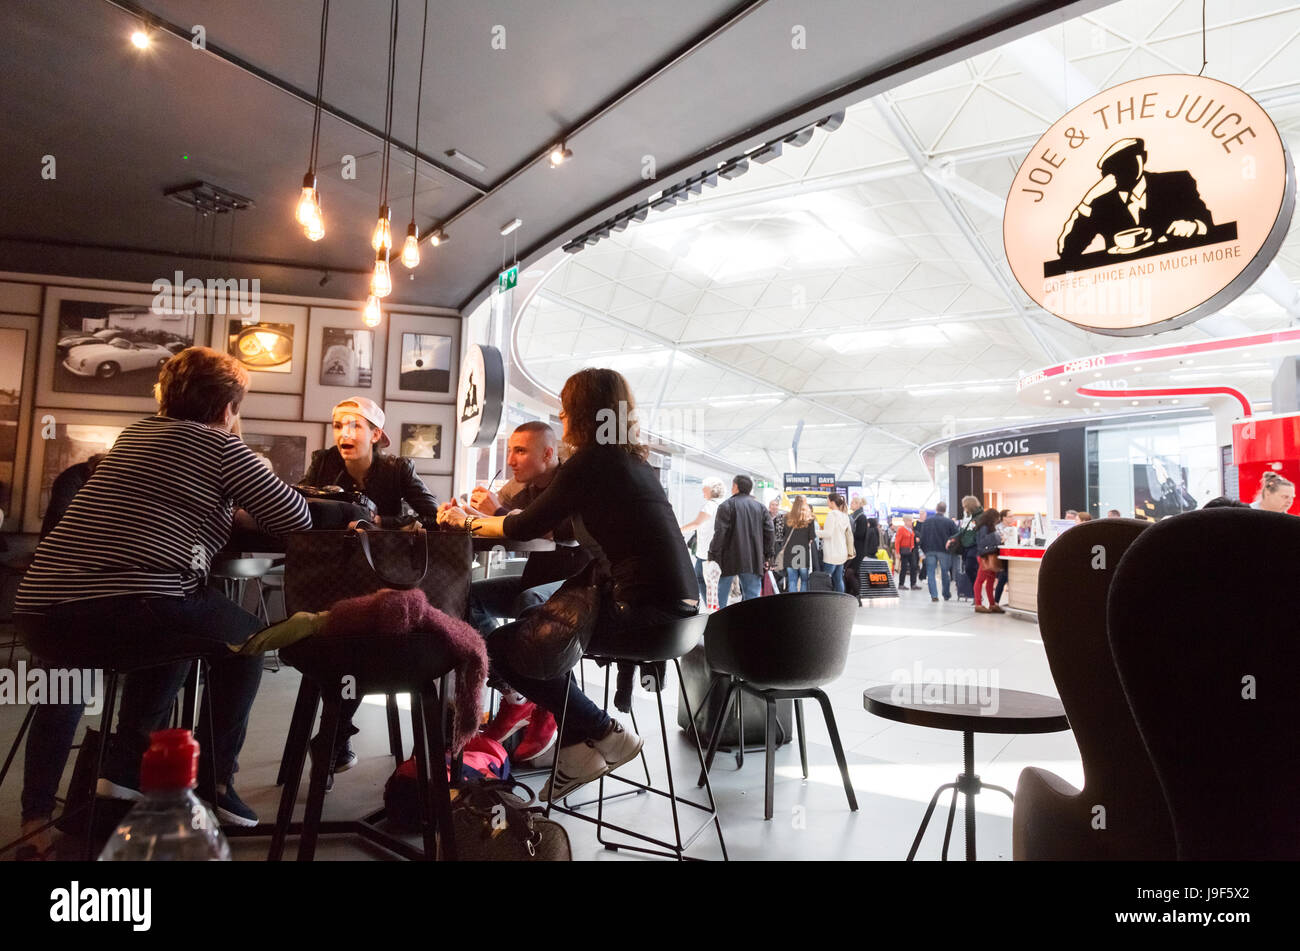 People drinking at the Joe & the Juice cafe, Stansted airport departures lounge, London UK - Stock Image